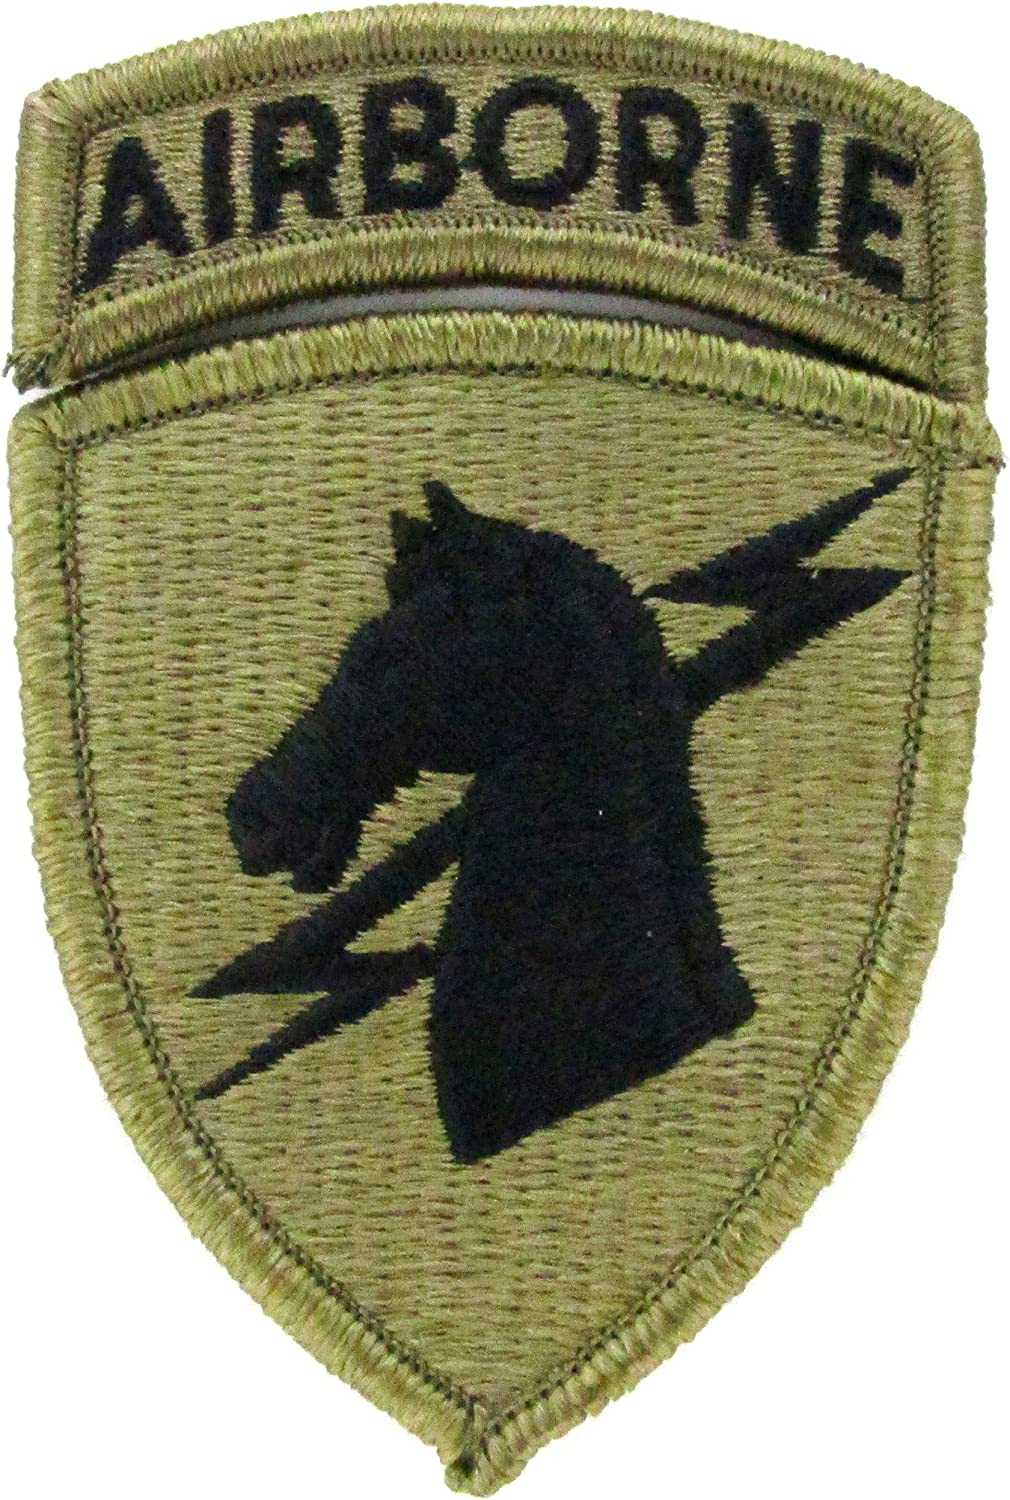 US ARMY 1st SPECIAL OPERATIONS COMMAND PATCH NEW!